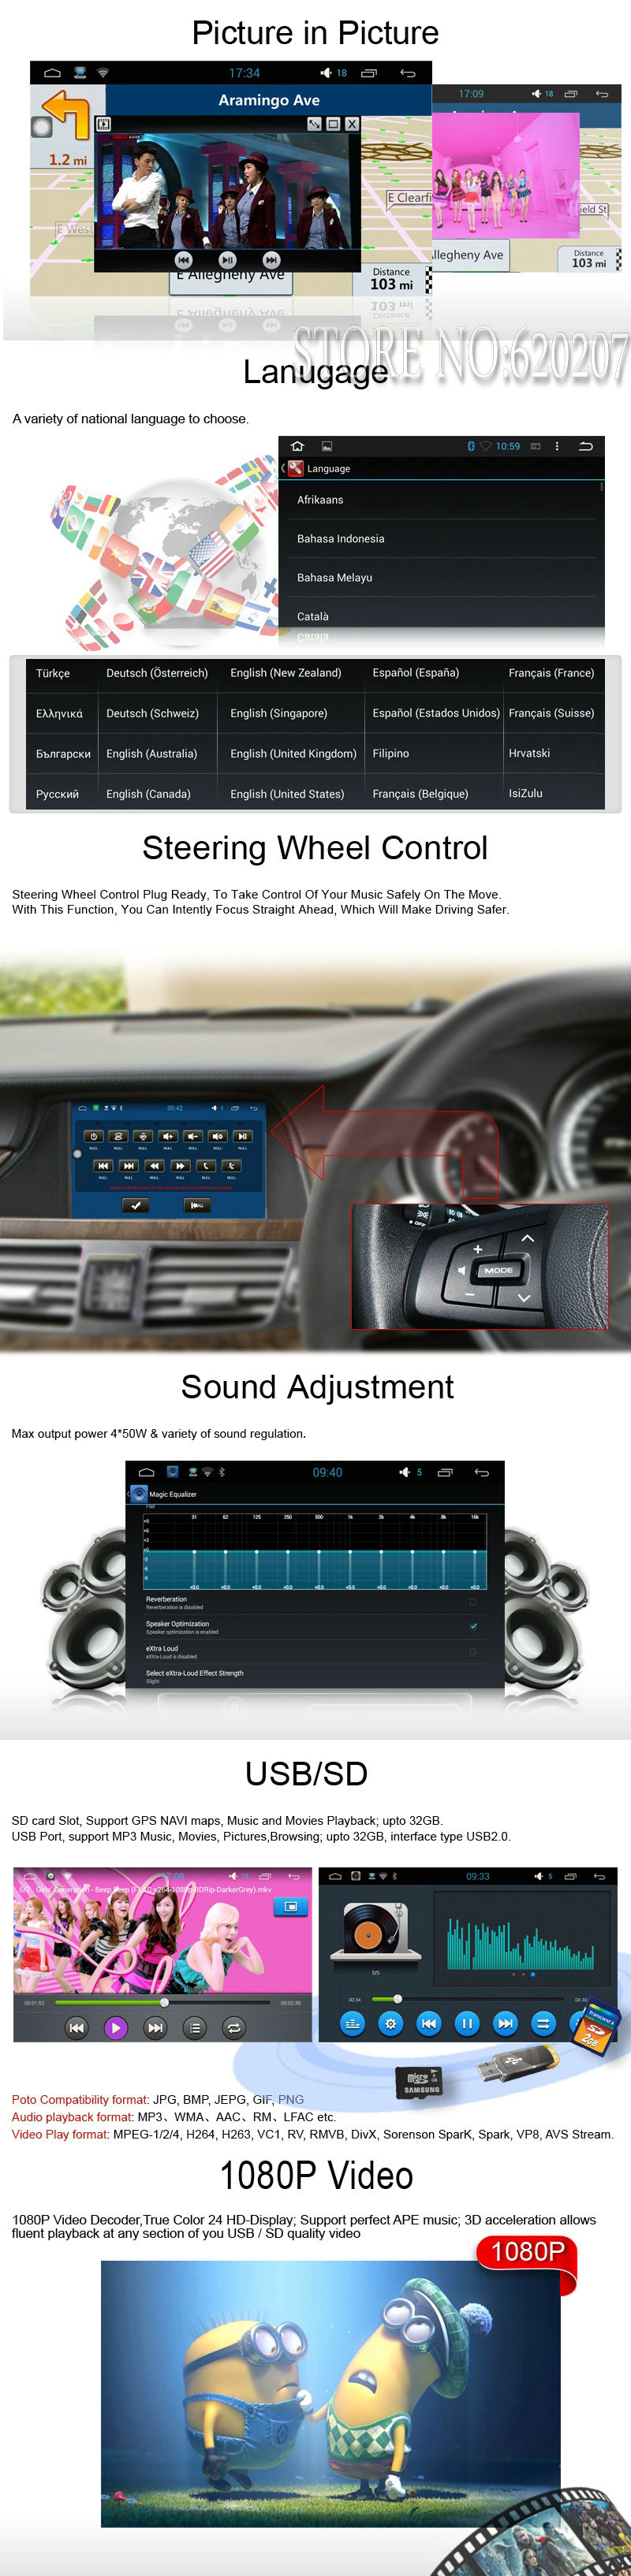 Quad-Core Android 5.1.1 CAR DVD player navigation FOR MITSUBISHI LANCER 2006-2013 car audio stereo Multimedia GPS support OBD